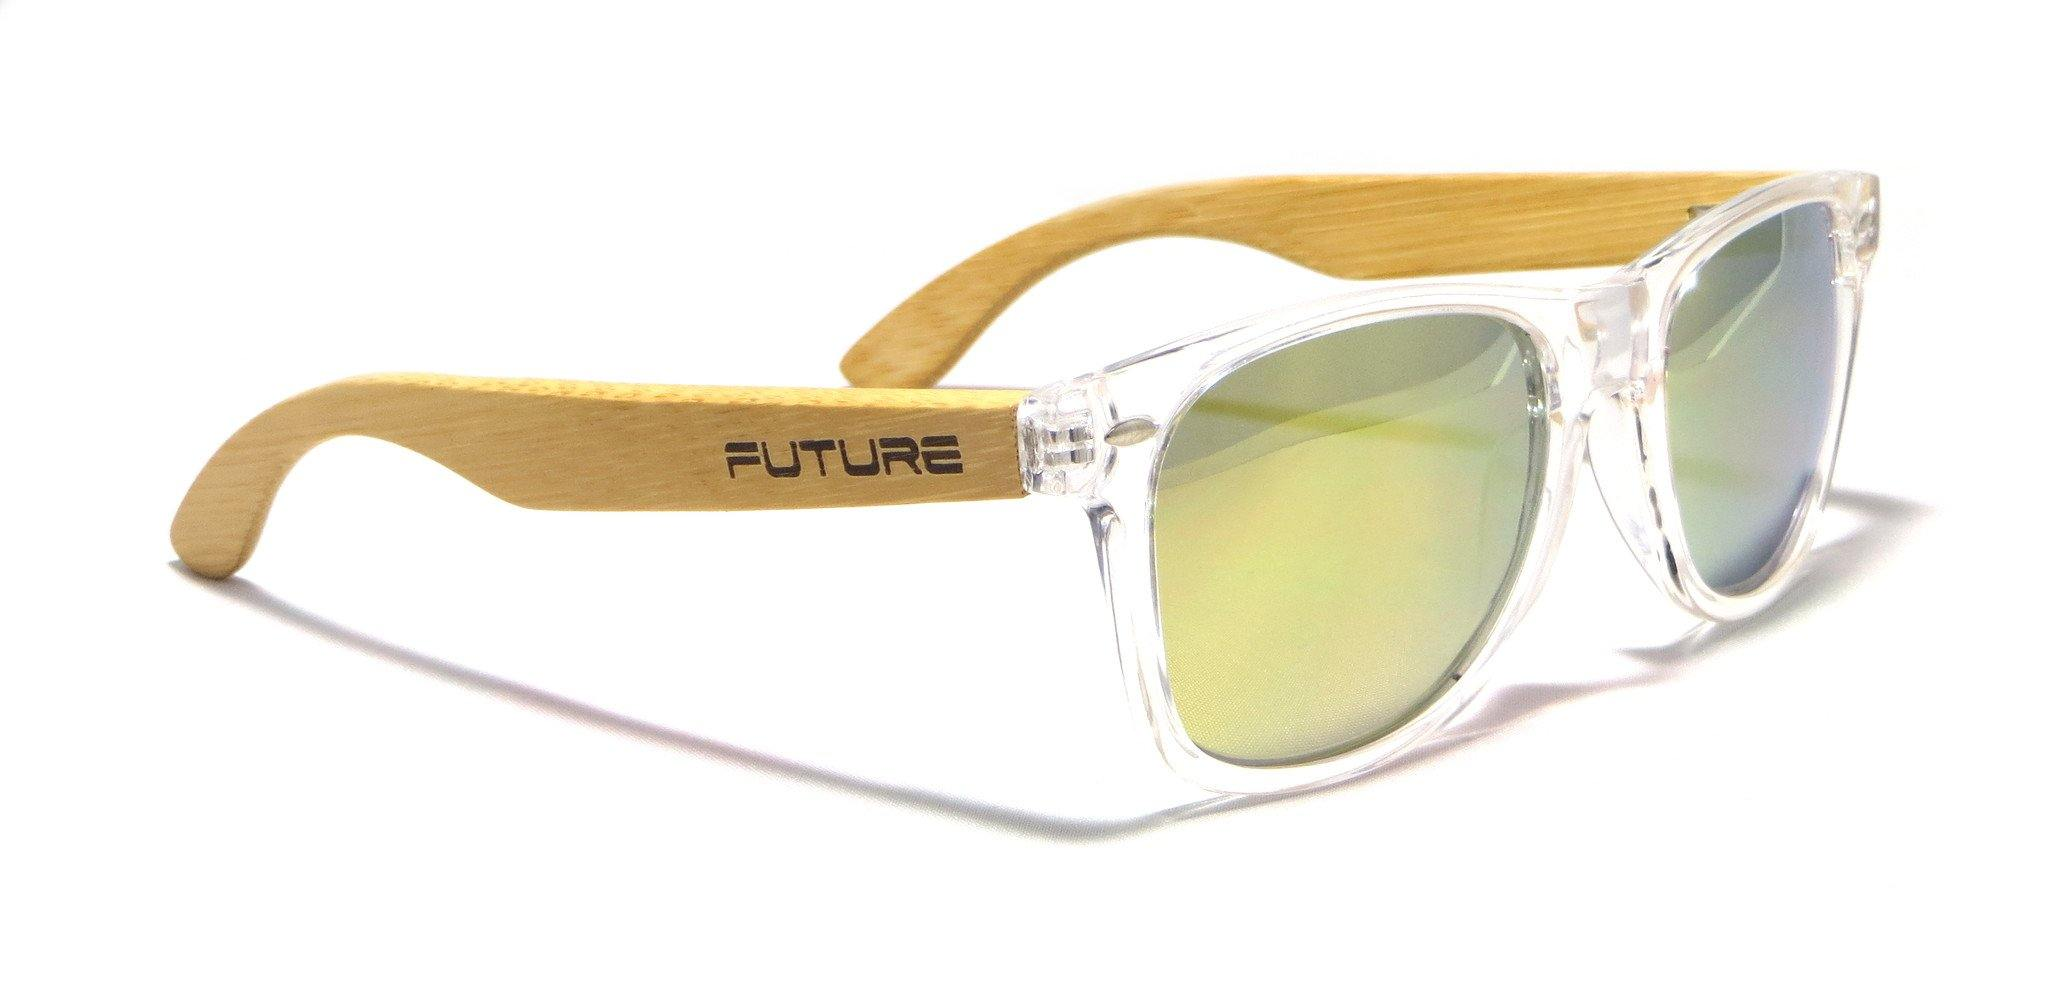 Translucent & Polarized Pure Gold - Future Originals - DadiTude